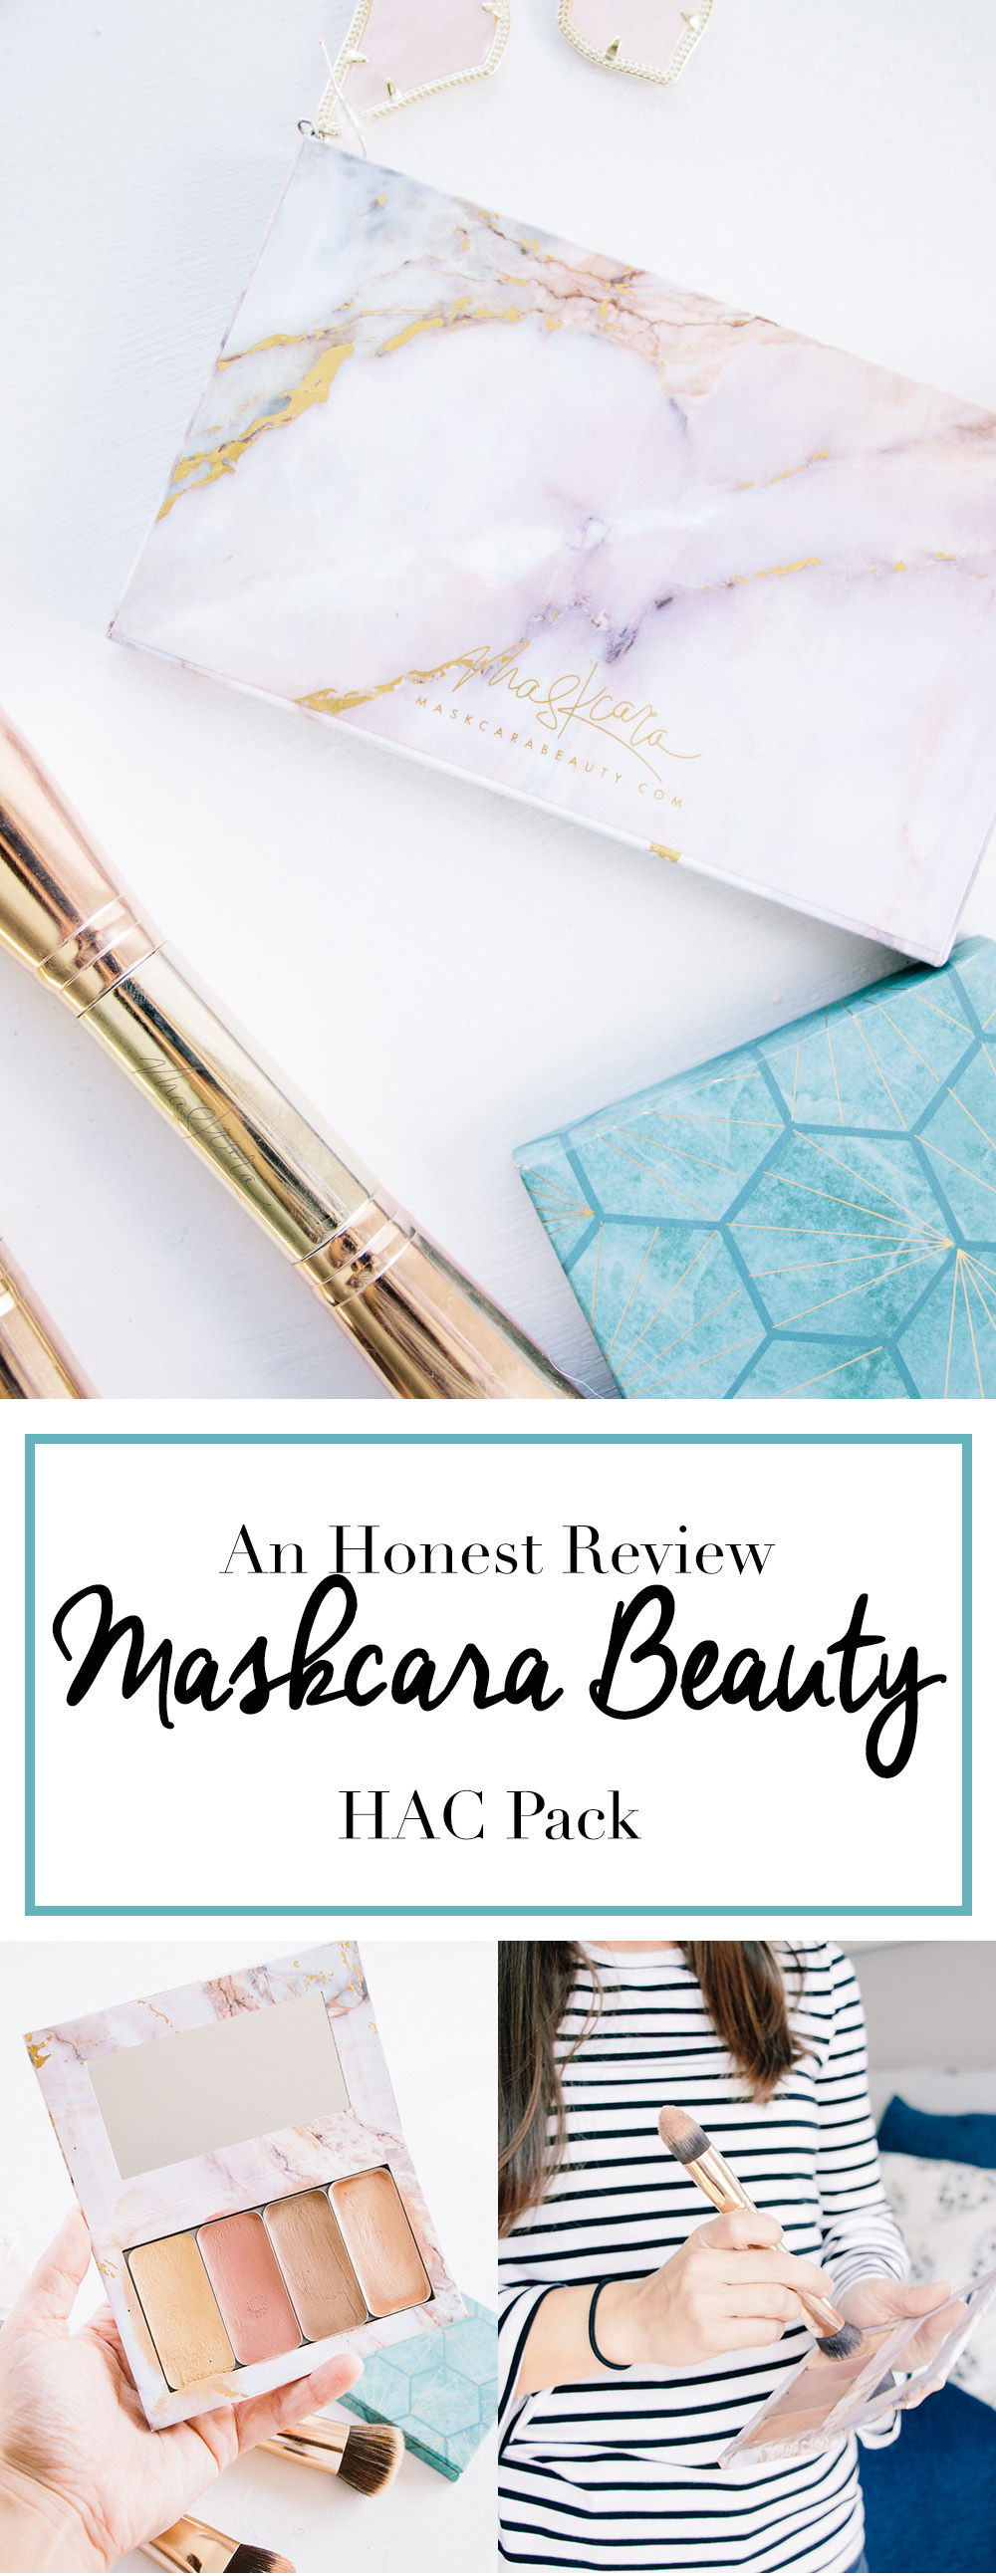 Review of Maskcara Beauty HAC Pack - the foundation you're going to want to try.